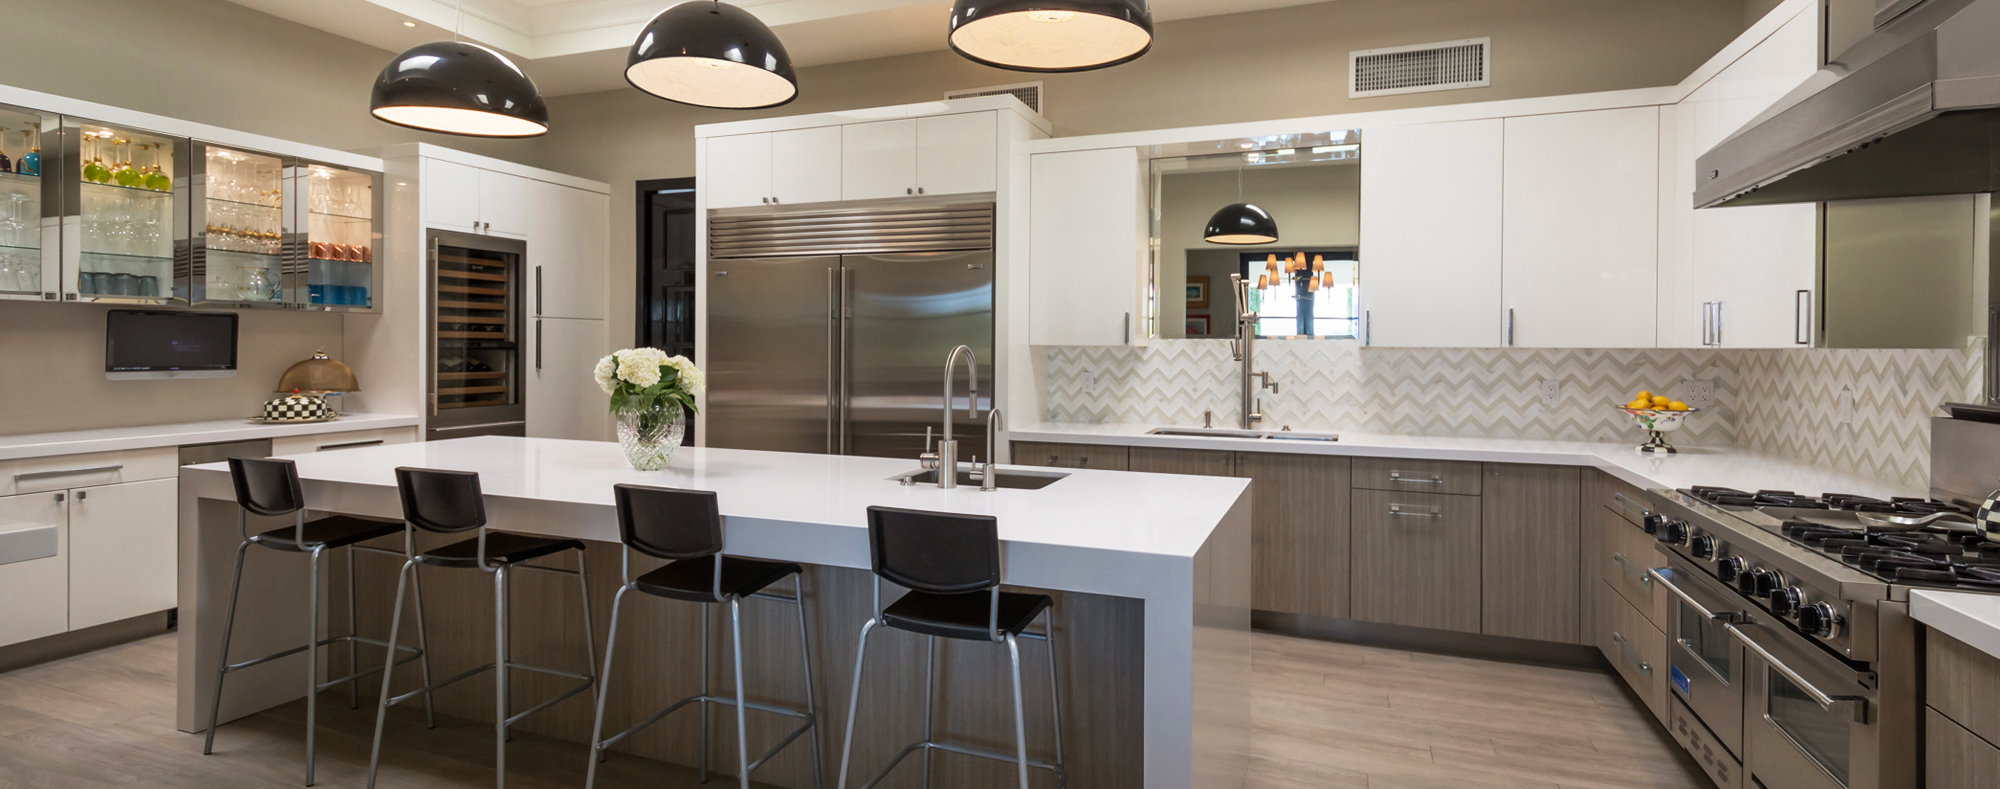 canyoncabinetry kitchen remodeling tucson az Home